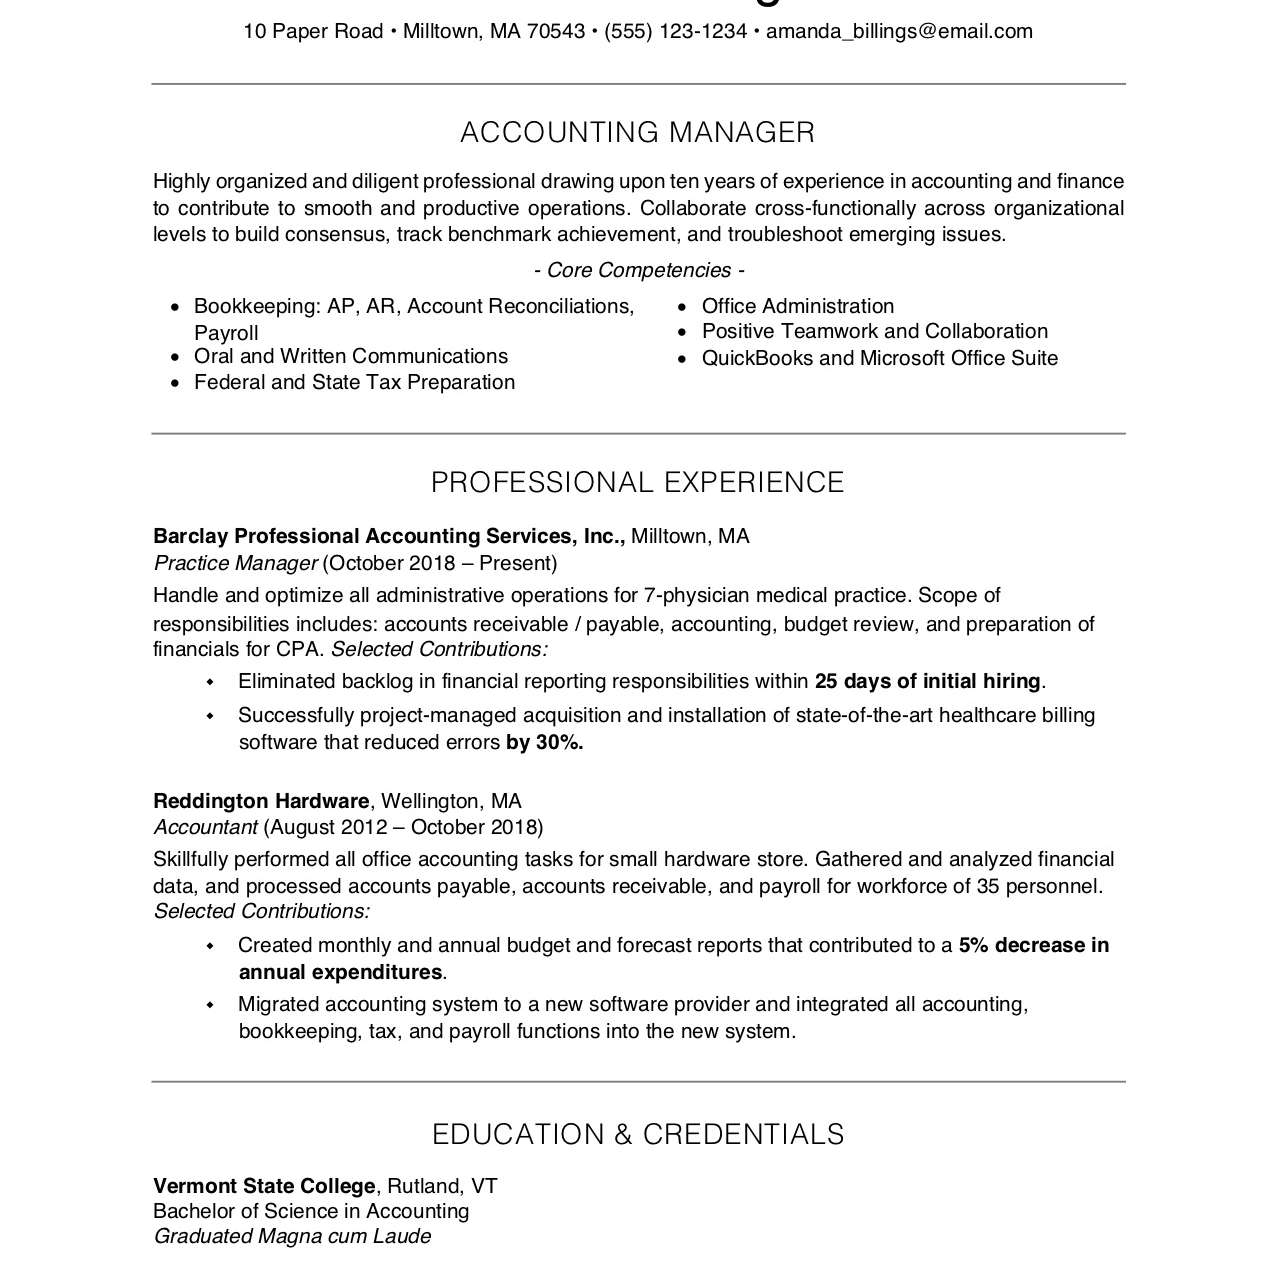 free professional resume examples and writing tips experience 2063596res1 validator sap Resume Experience Professional Resume Examples